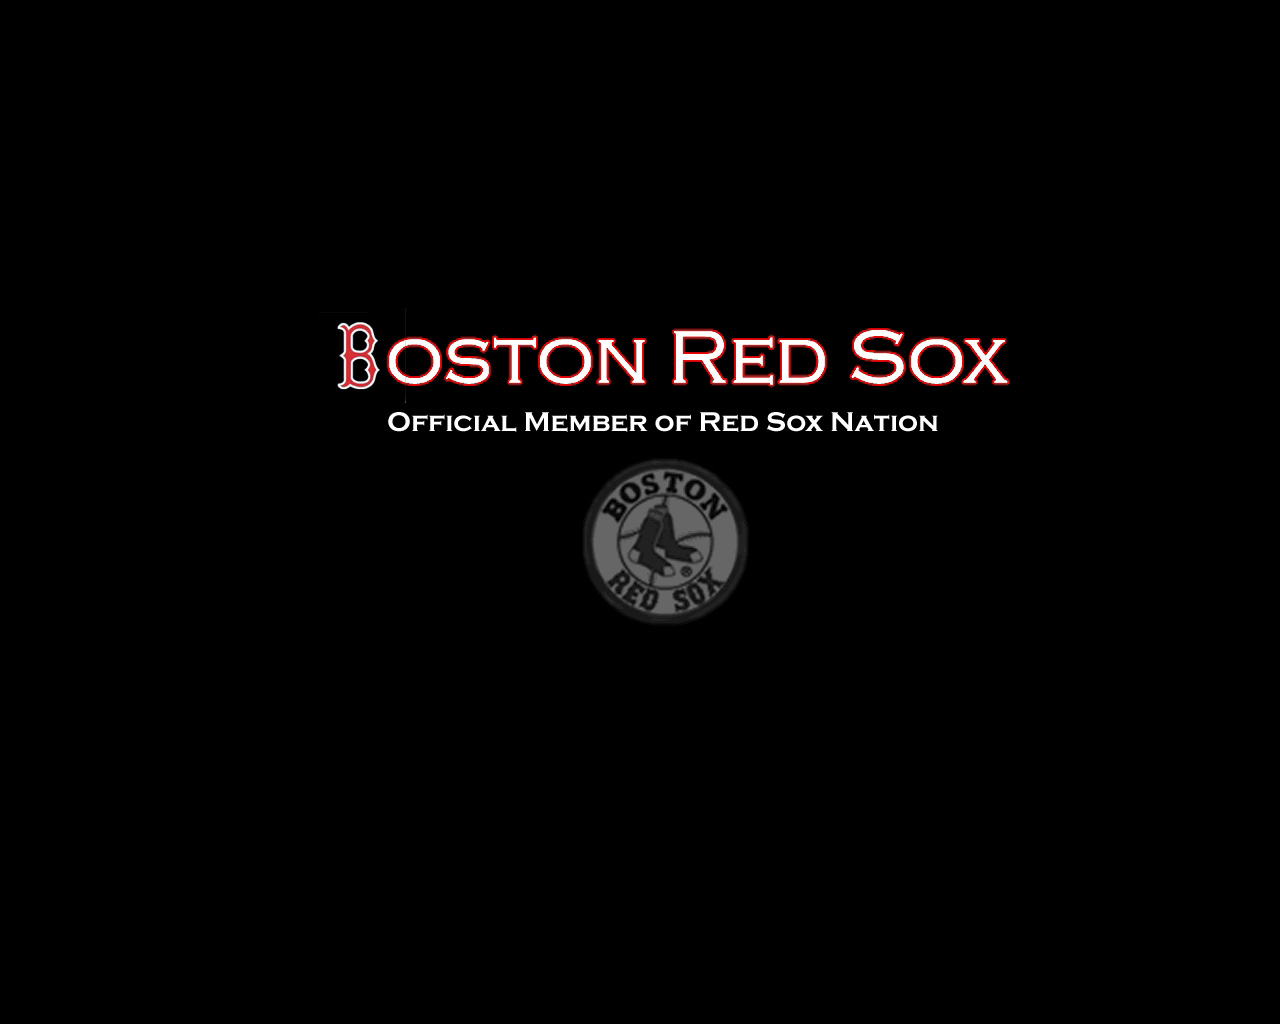 Boston Red Sox wallpapers Boston Red Sox background   Page 7 1280x1024